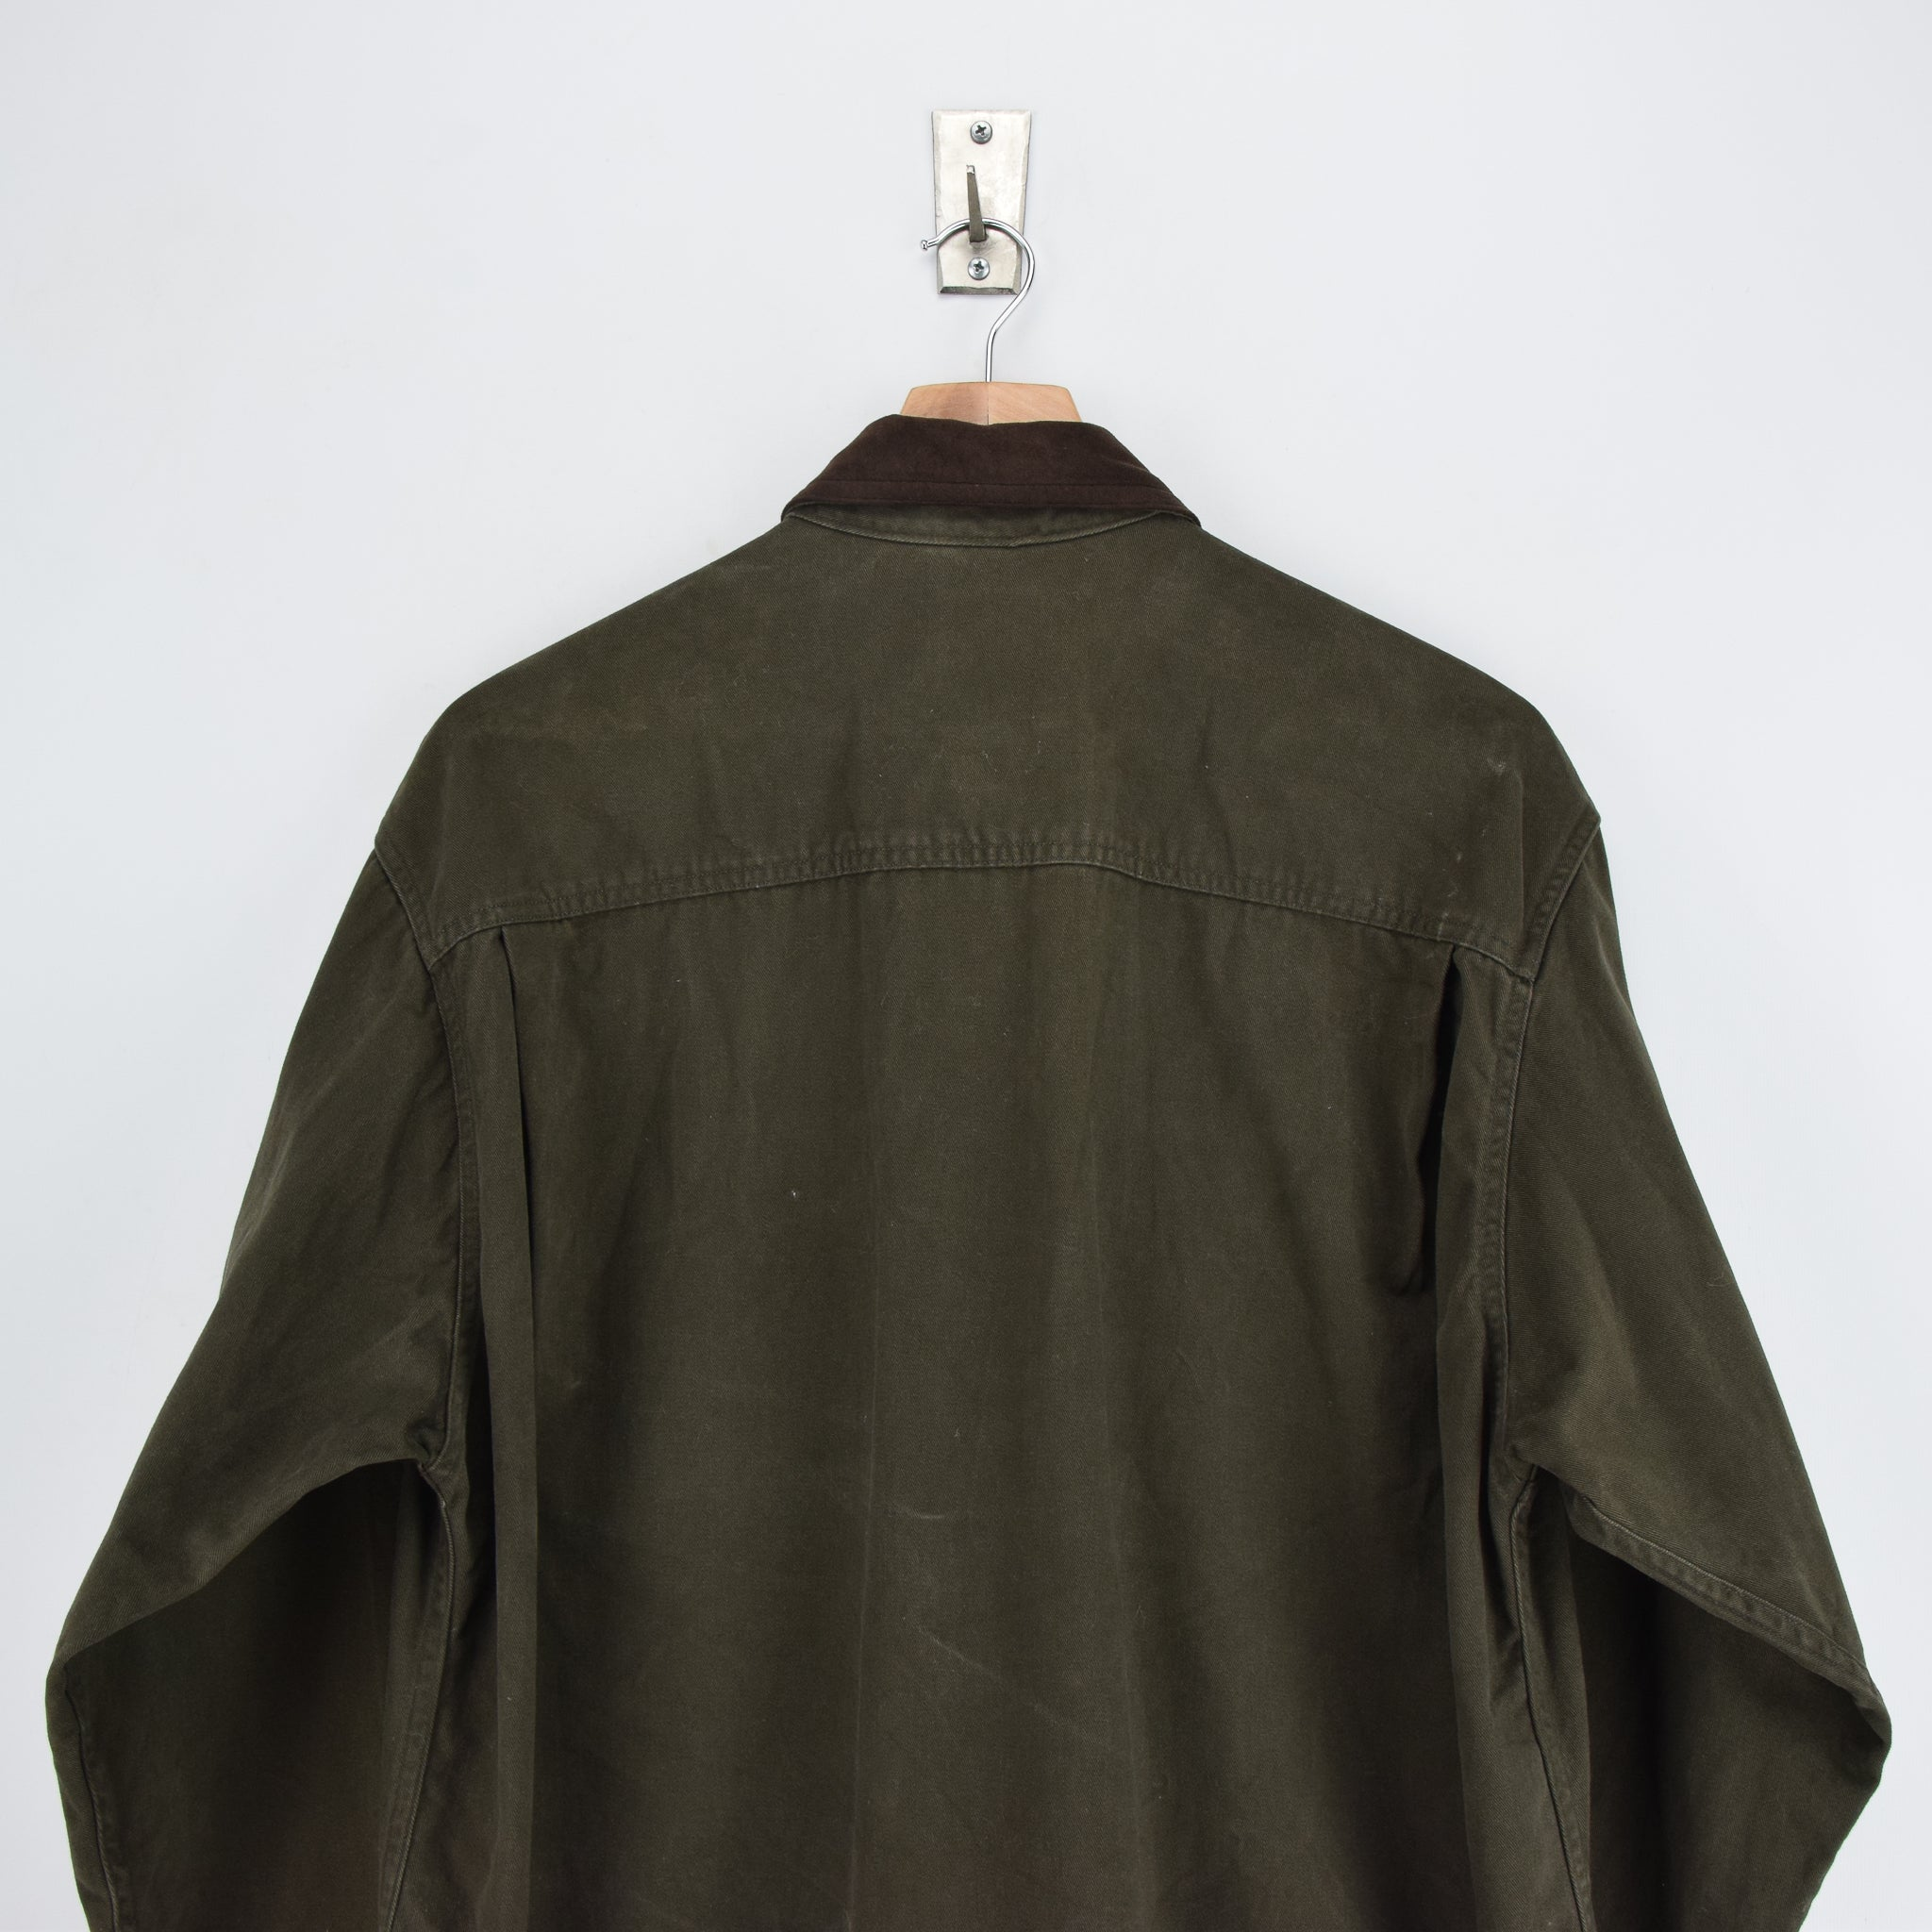 Vintage Woolrich Dark Green CPO Style Cotton Field Shirt L shoulders